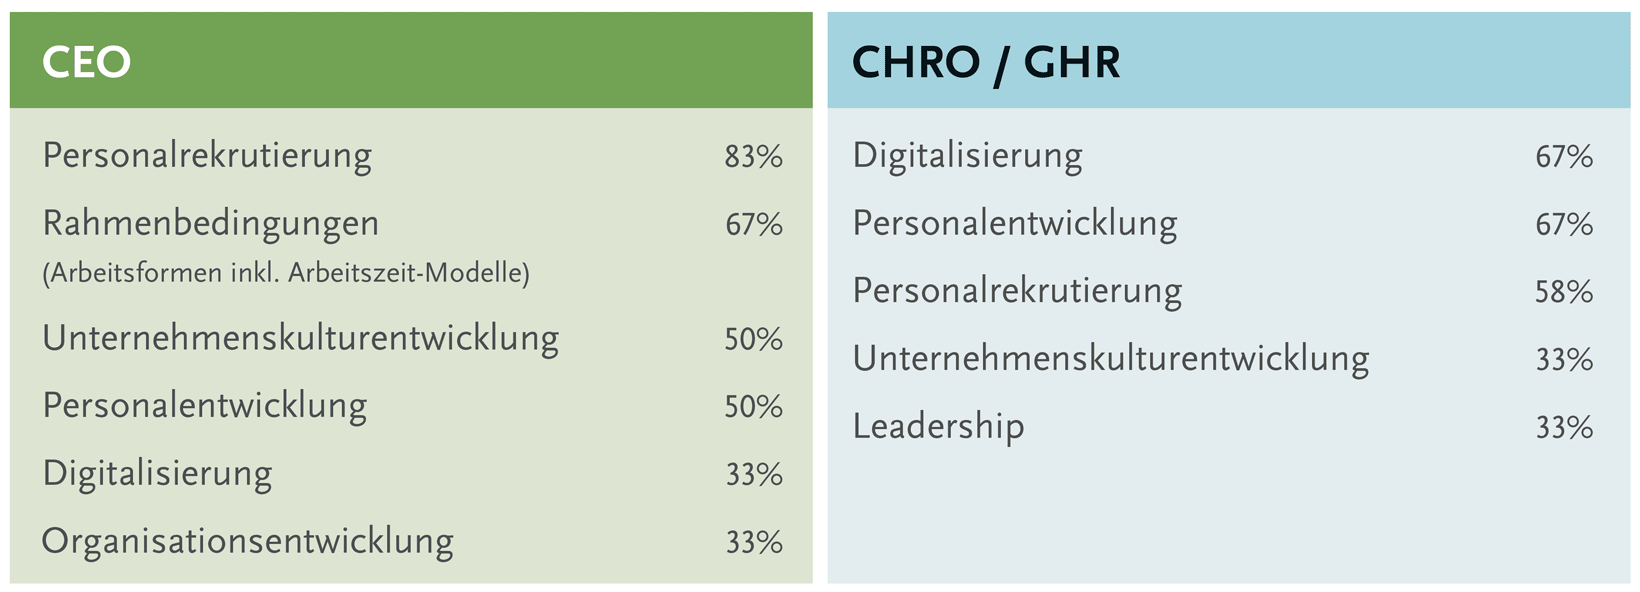 German CHRO